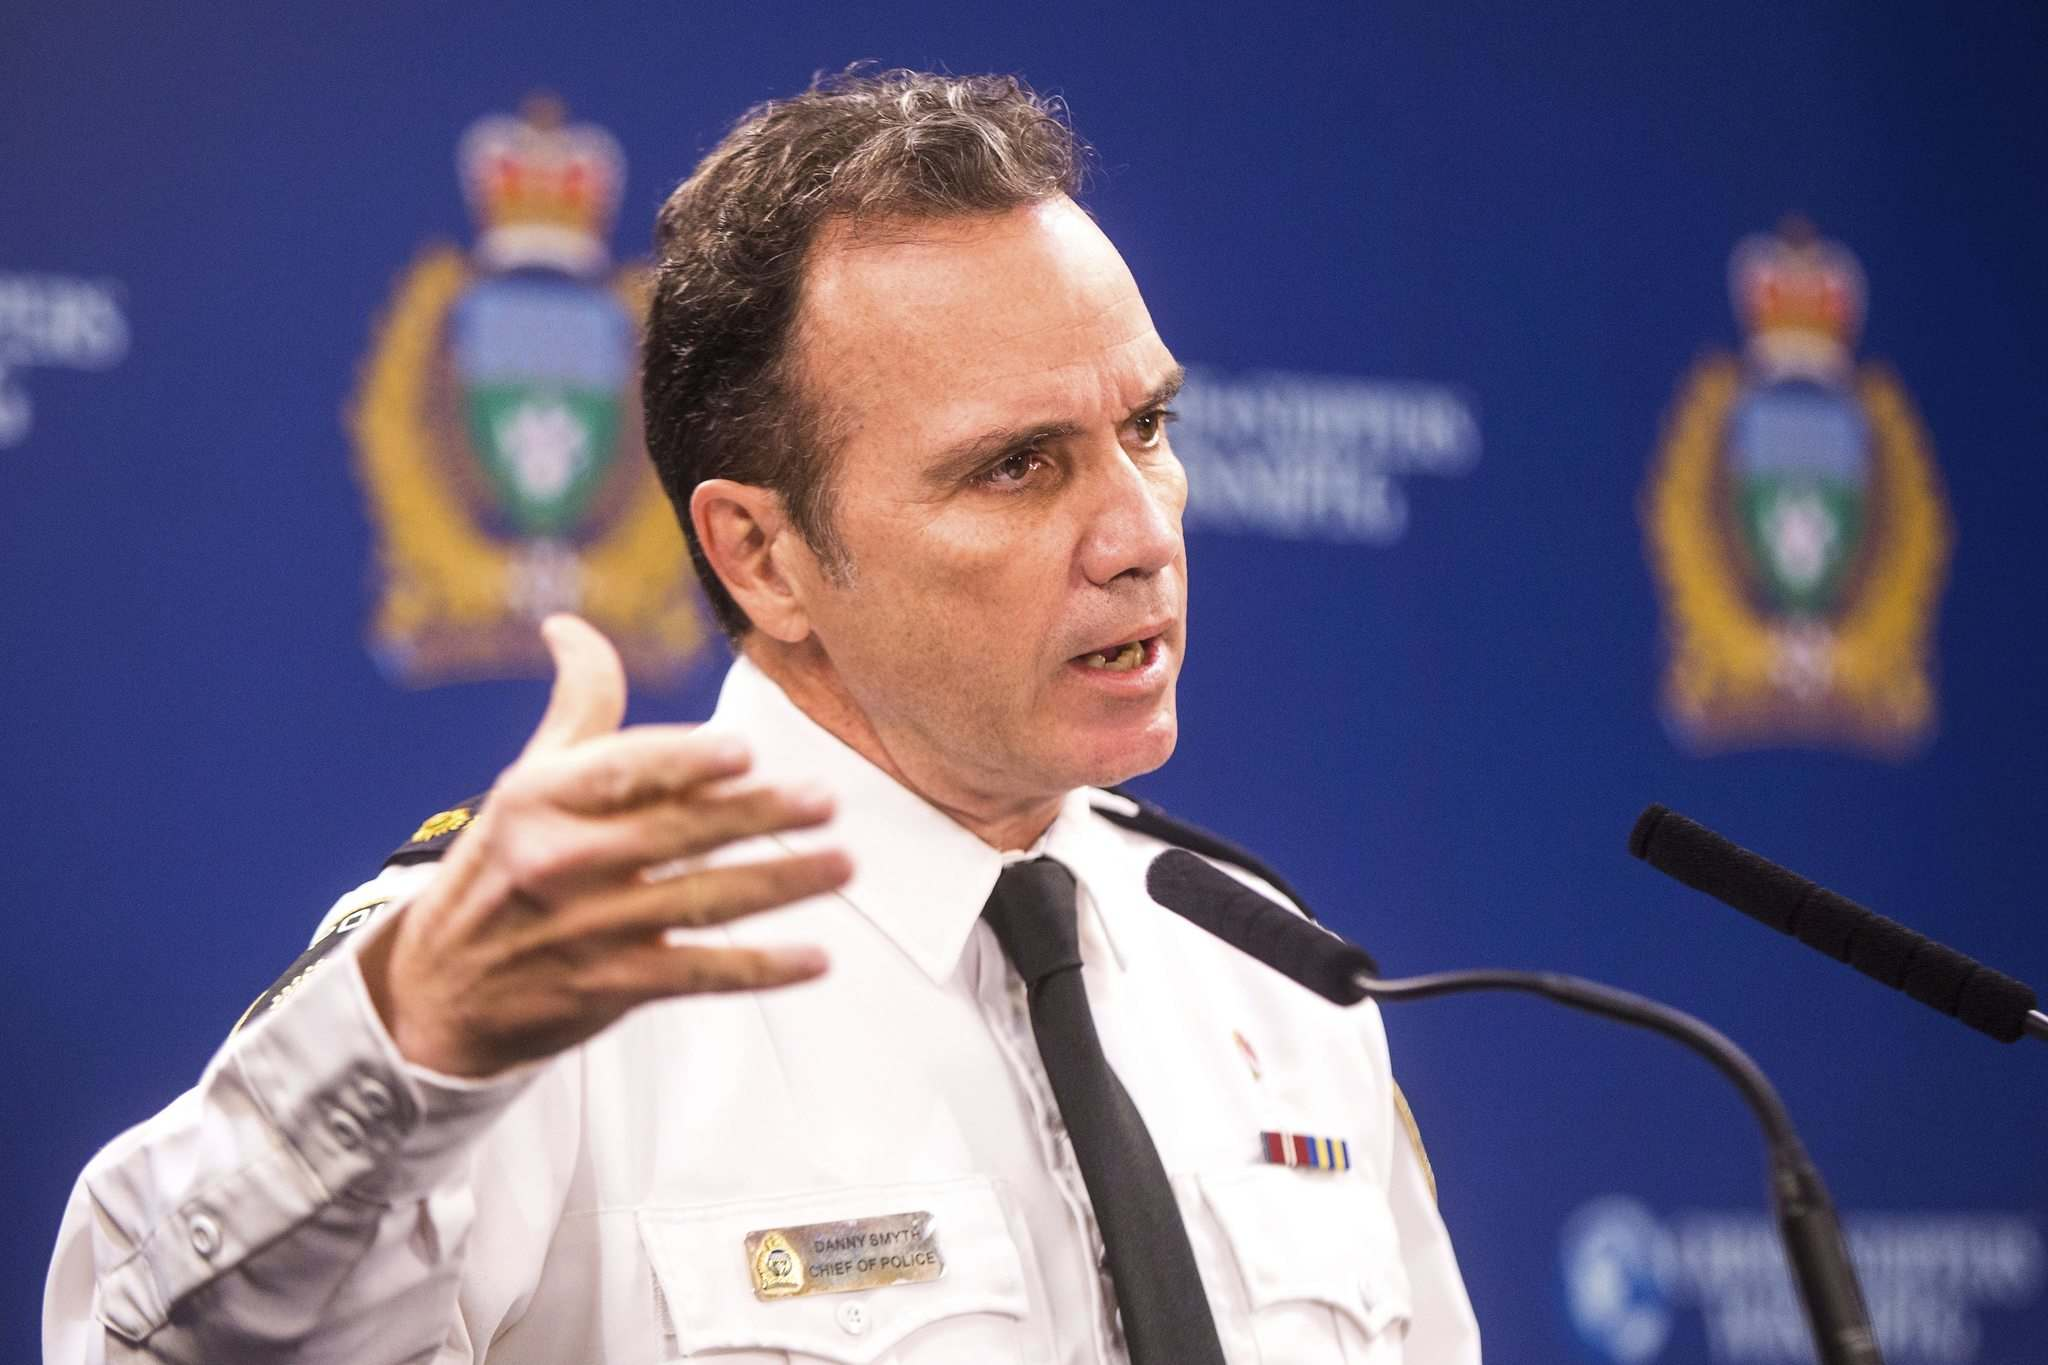 Winnipeg police Chief Danny Smyth says the level of crime is alarming to citizens and officers alike. (Mikaela MacKenzie / Winnipeg Free Press)